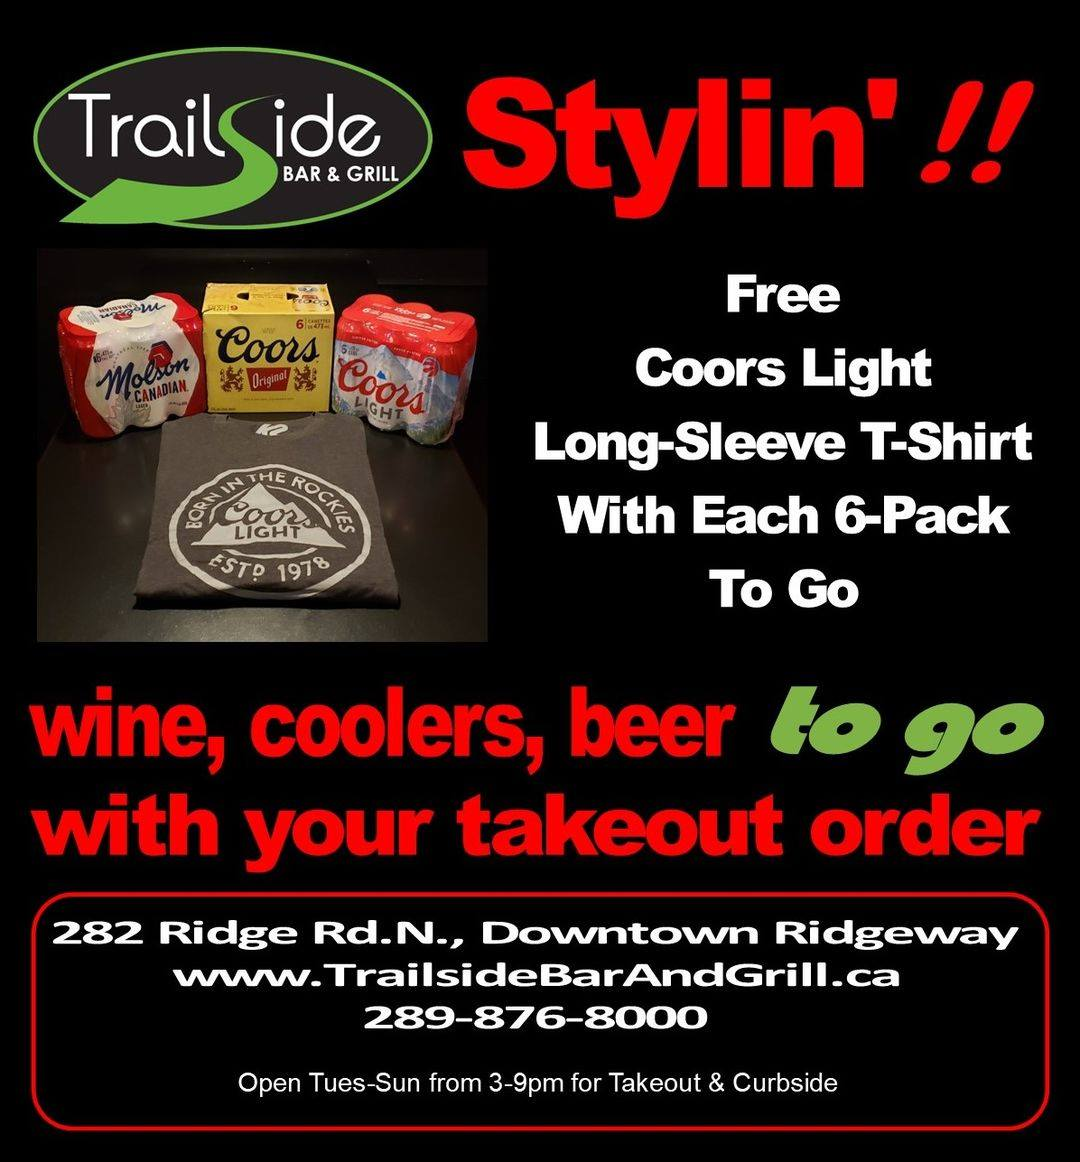 """We feed you, we dress you – good ol' Trailside Bar and Grill!"""